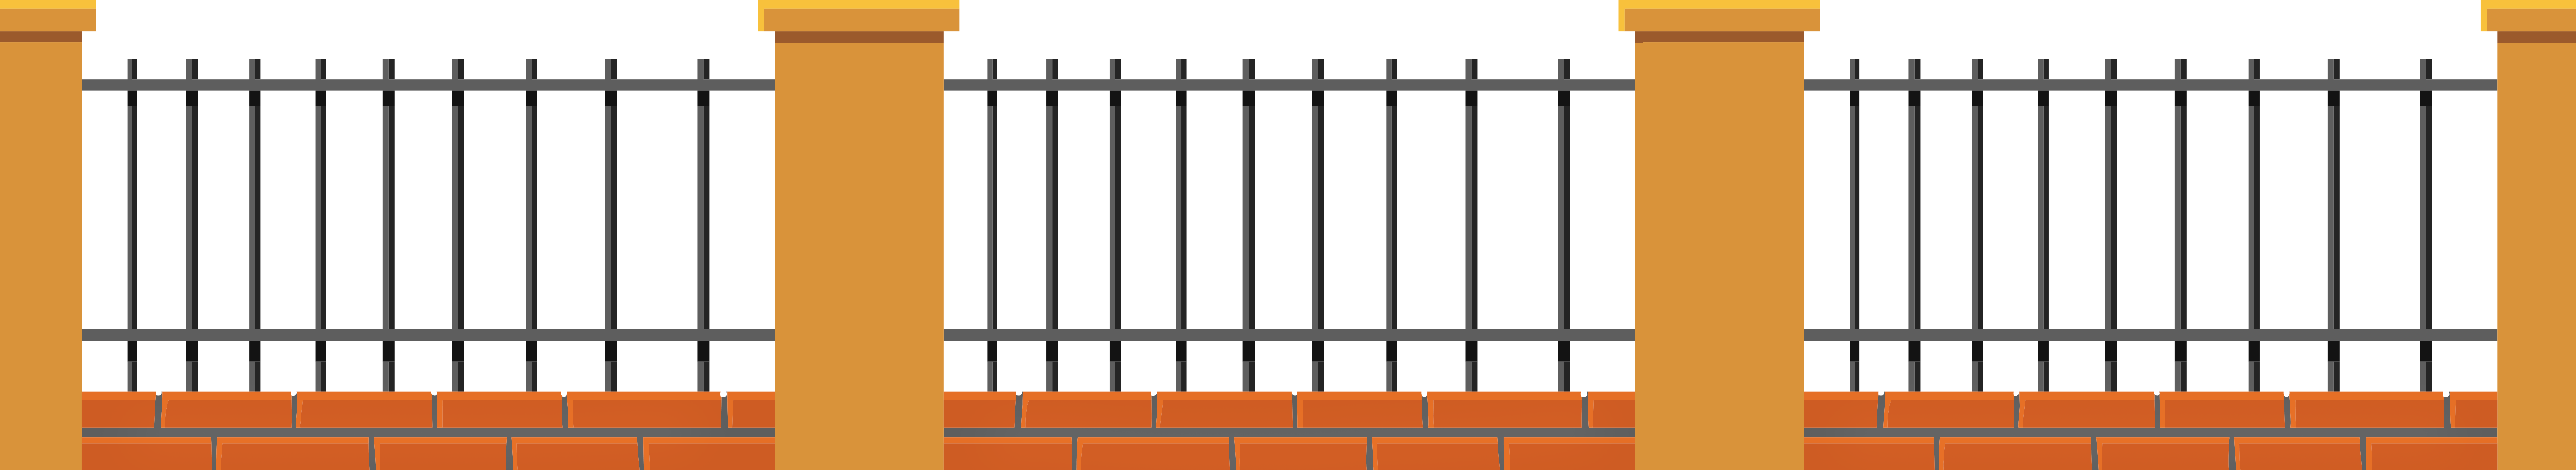 Fence clipart iron fence. Brick png image gallery